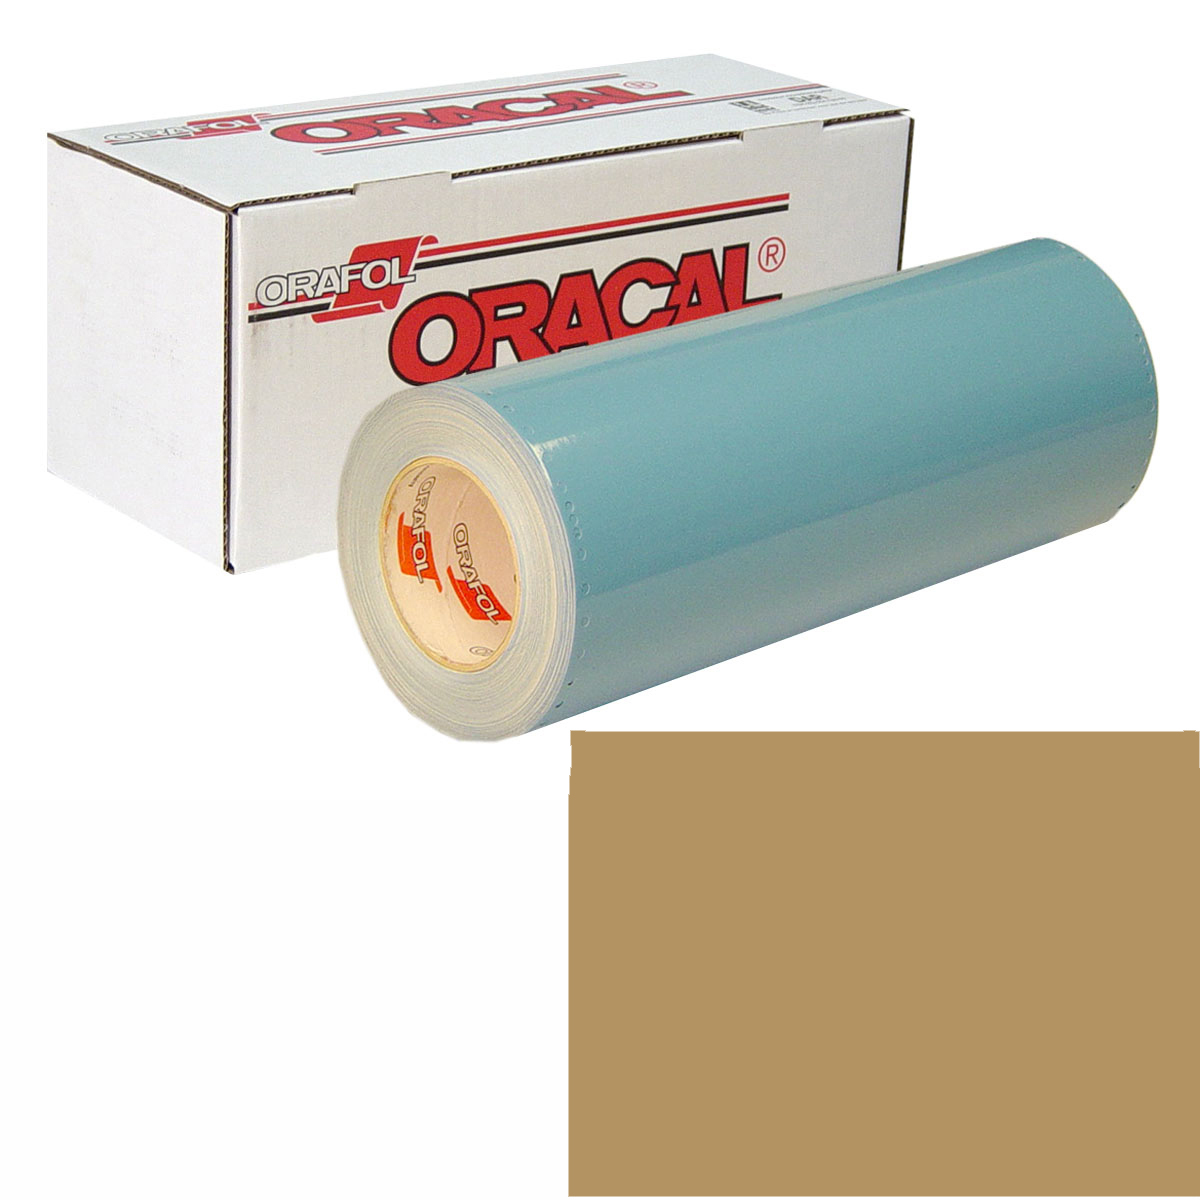 ORACAL 751 Unp 24in X 10yd 930 Gold Metallic